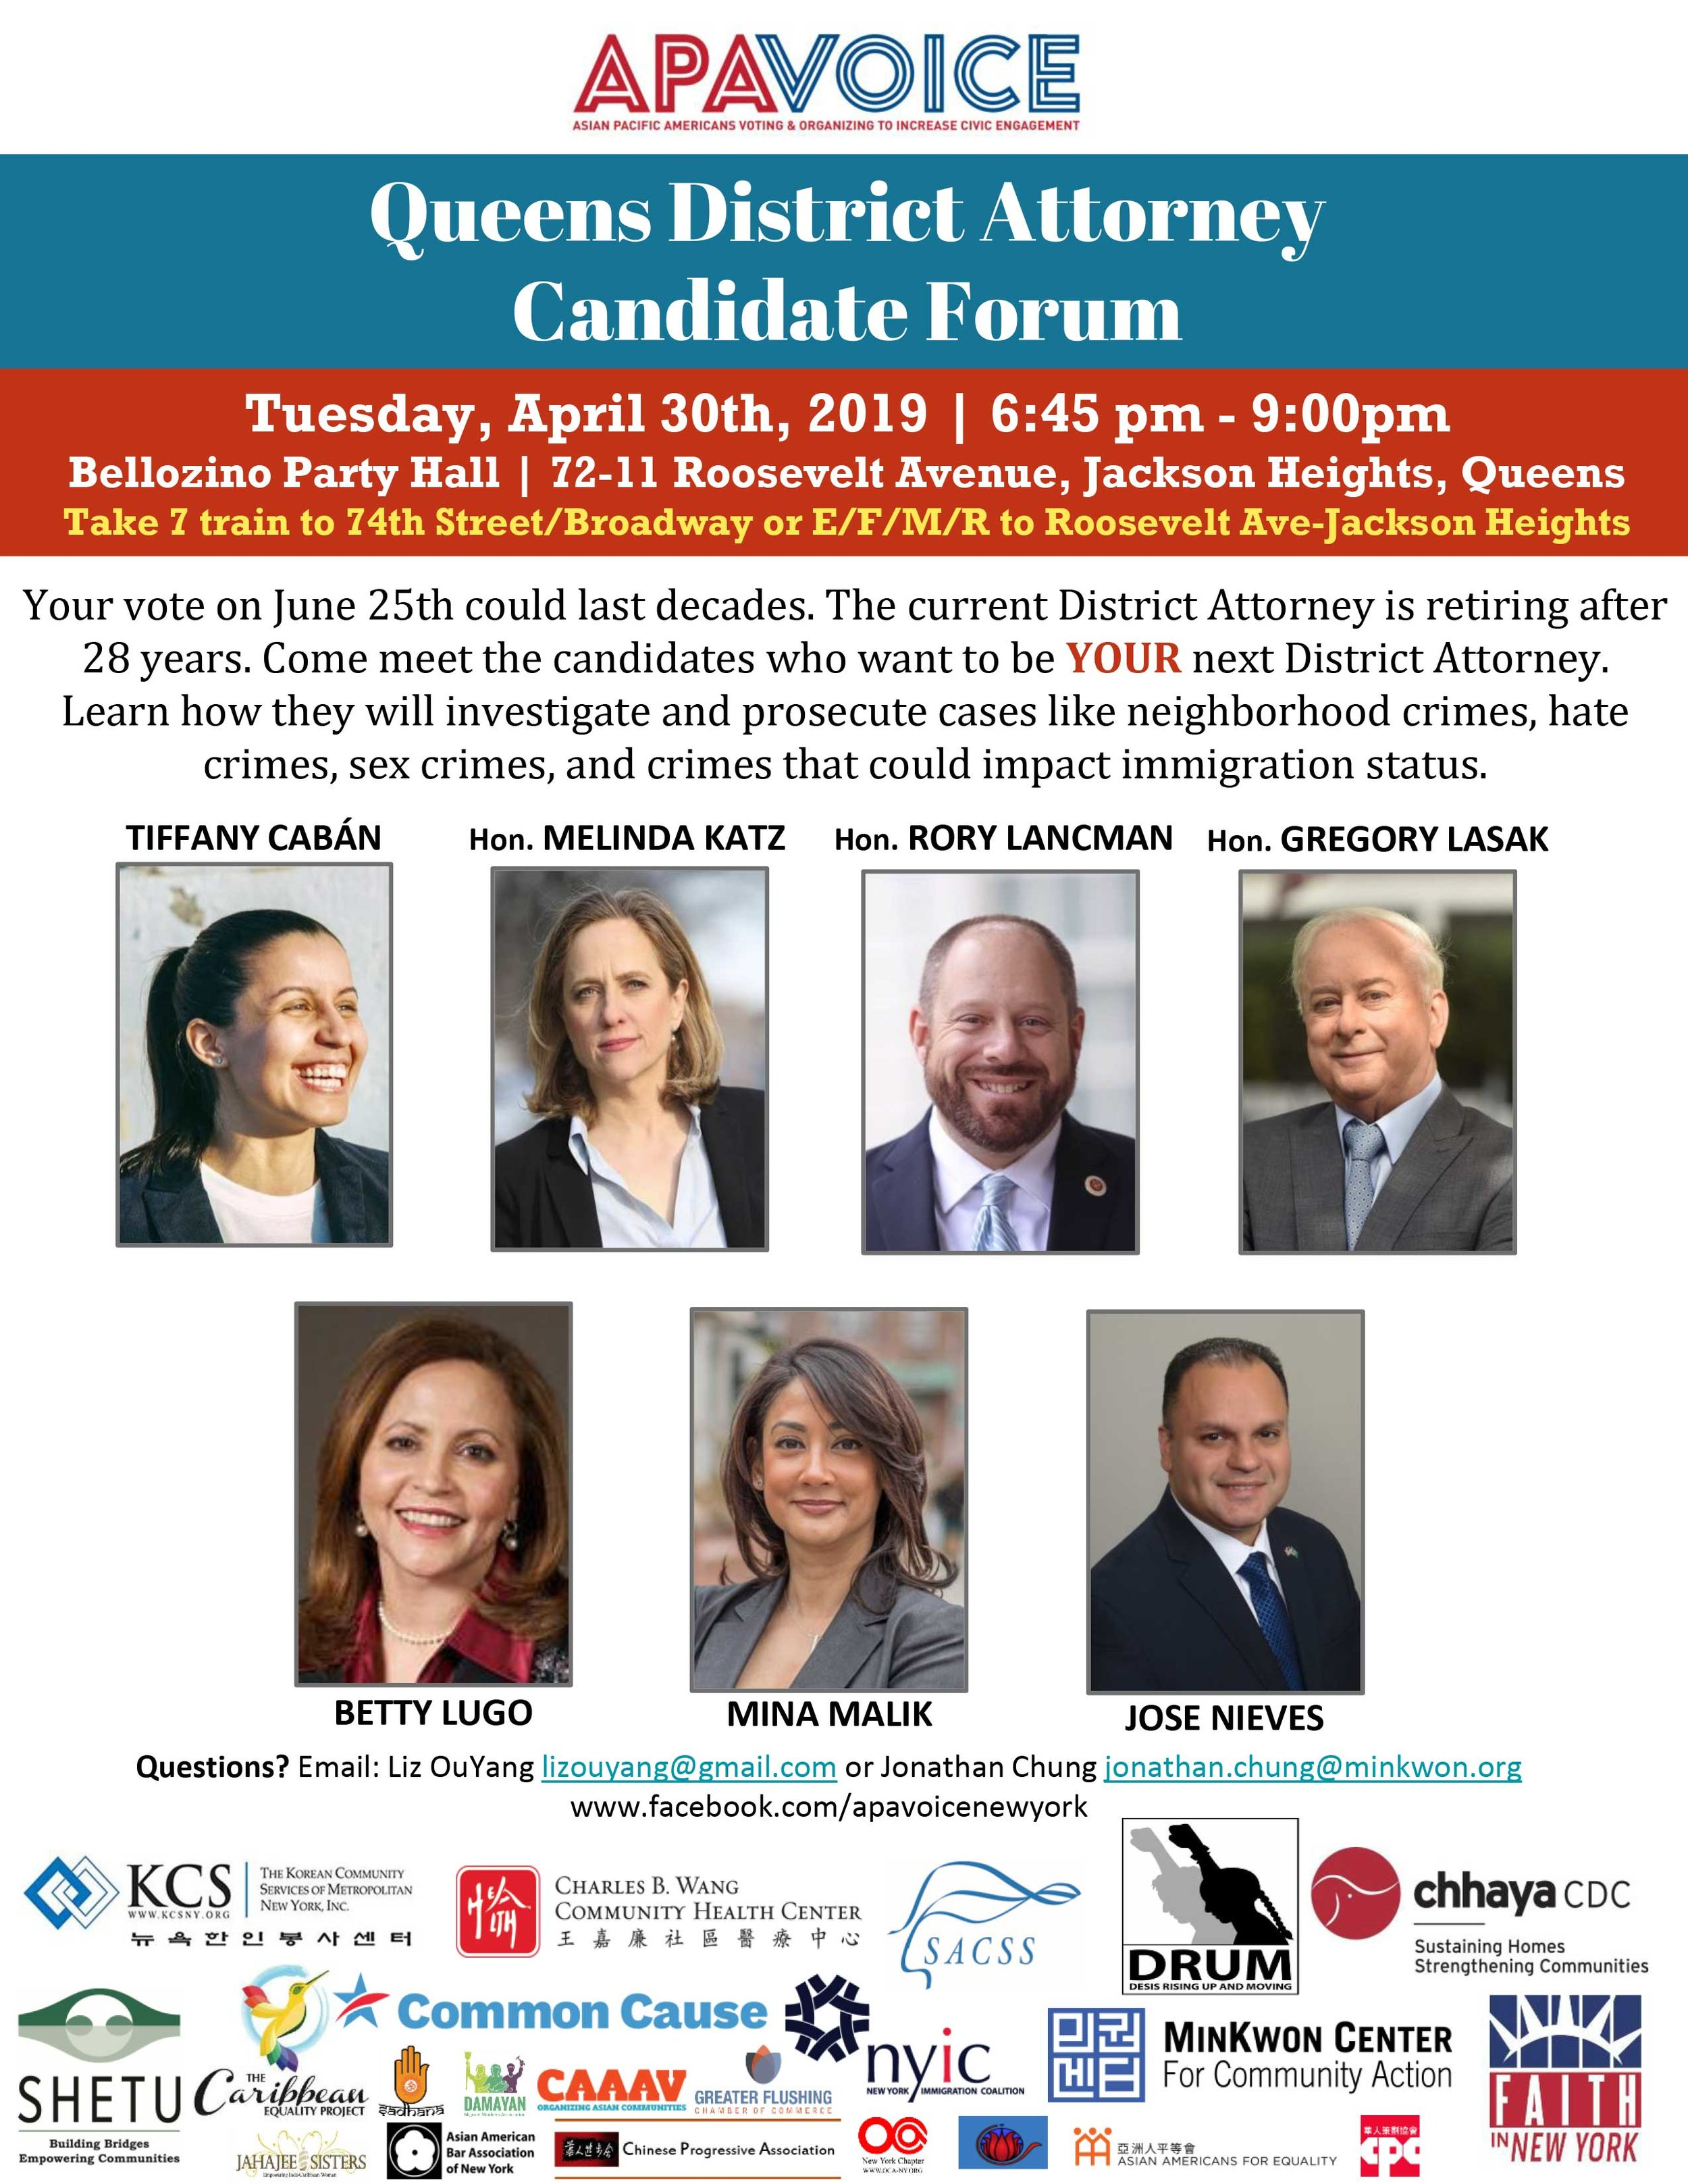 Queens District Attorney Candidate Forum